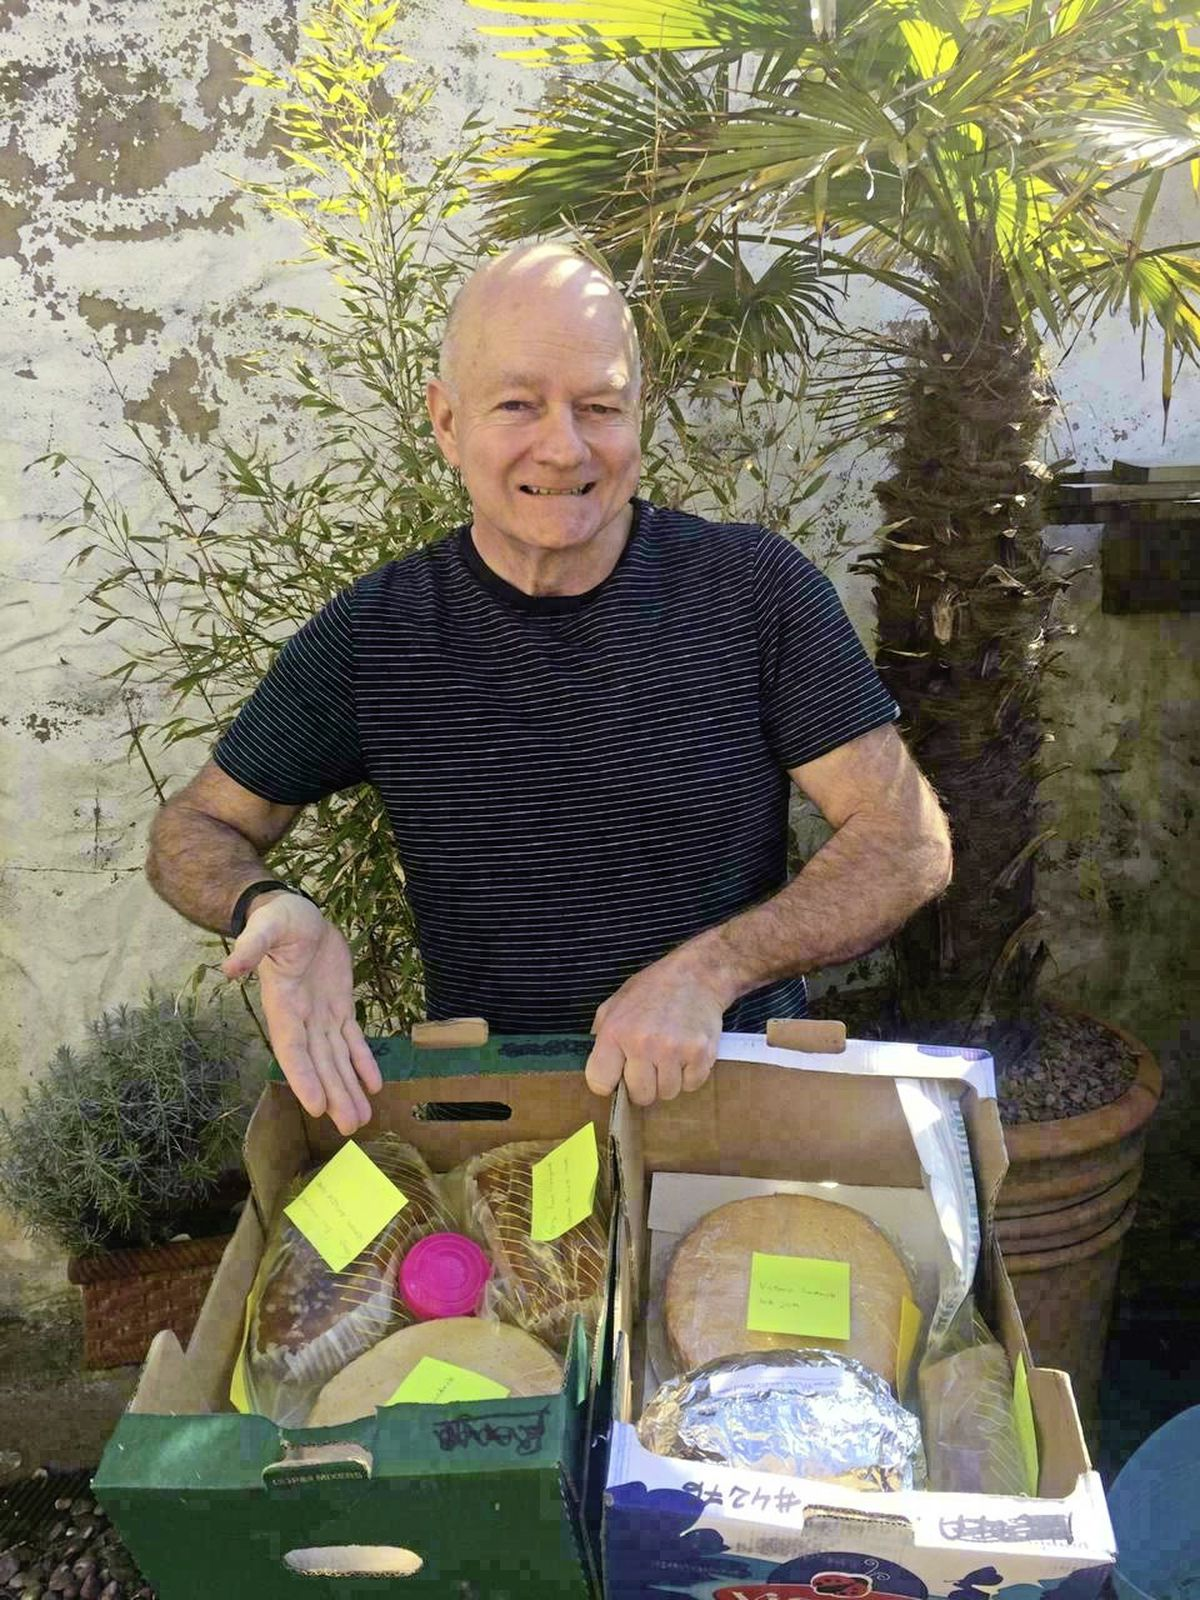 Stroke survivor Tony Robinson has been baking cakes for staff at the PEH during lockdown as a way of giving back to the service which has helped him on his road to recovery. Image supplied. (29273186)